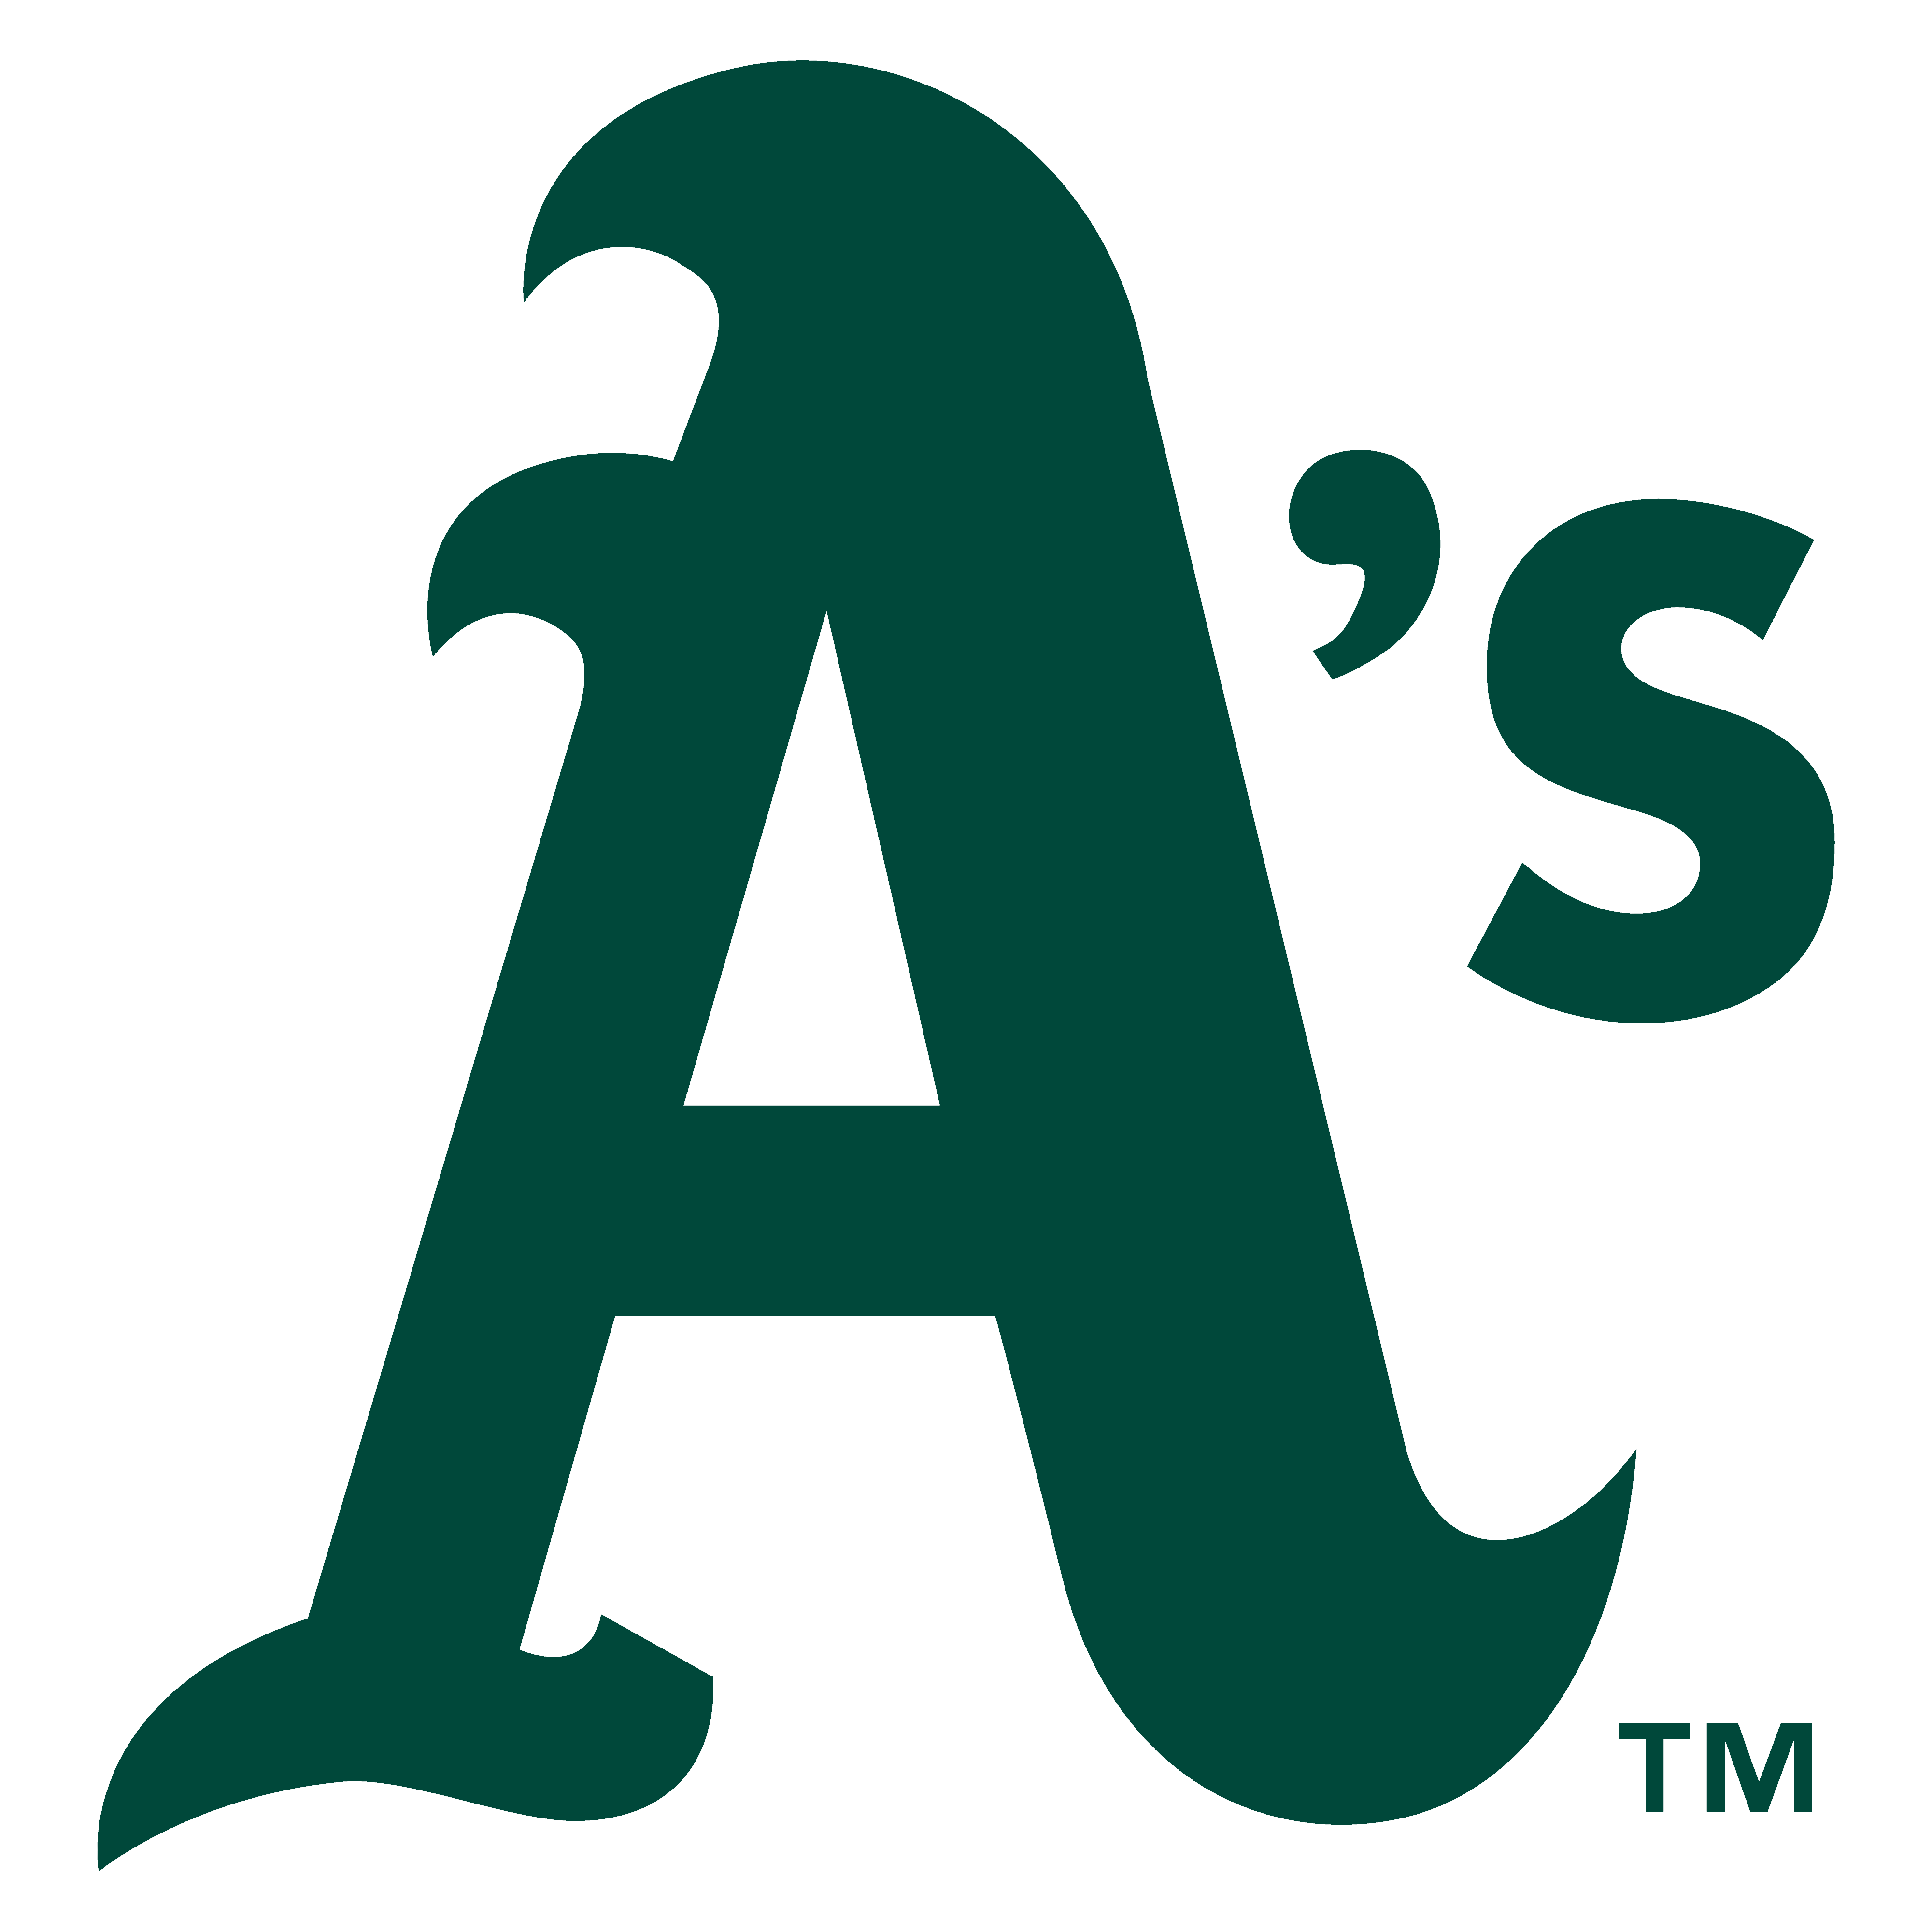 Oakland Athletics Logos Download